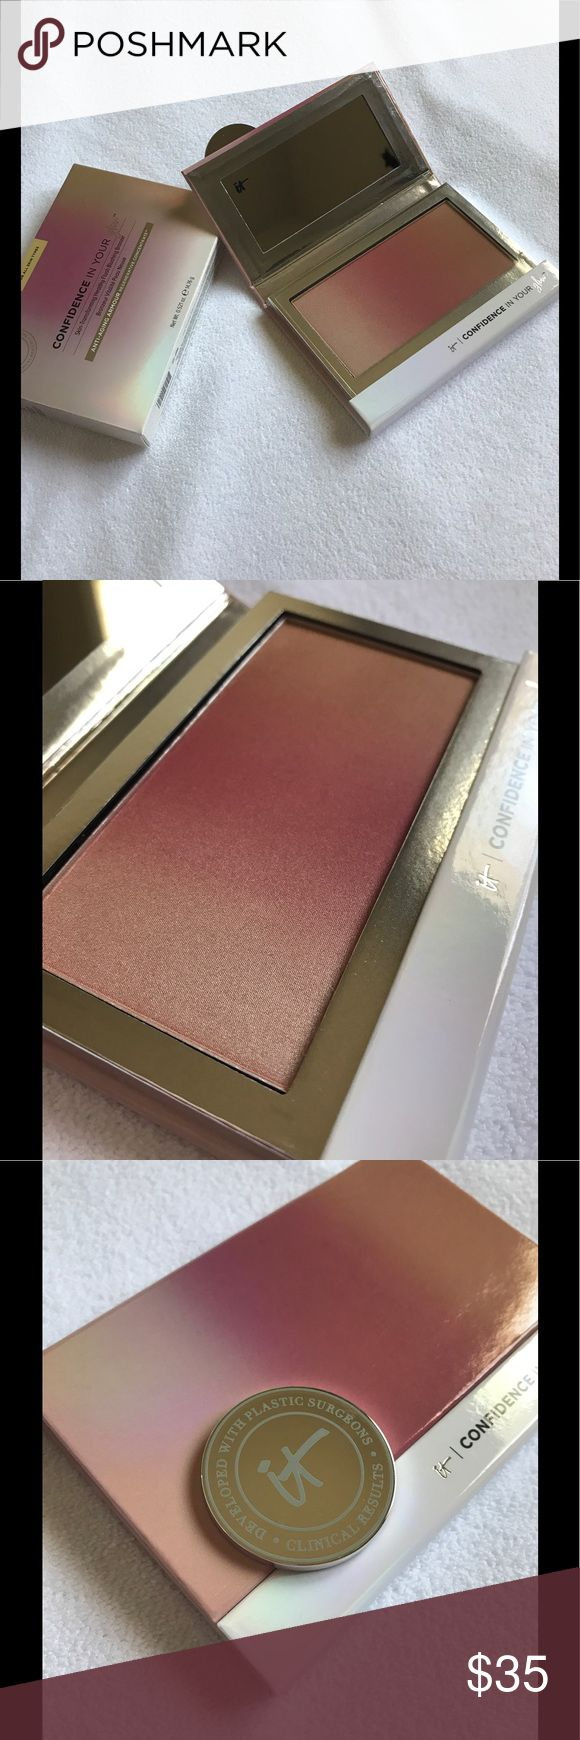 """MAKE AN OFFER! Confidence in your glow Confidence in Your Glow™  IT'S YOUR BLUSH, BRONZER AND HIGHLIGHTER IN ONE SWEEP! Skin-Transforming Healthy Flush Blushing Bronzer..... COLOR: """"Instant Natural Glow""""....... (NOT FINAL PRICE!!! Priced to receive offers!) It Cosmetics Makeup Bronzer"""